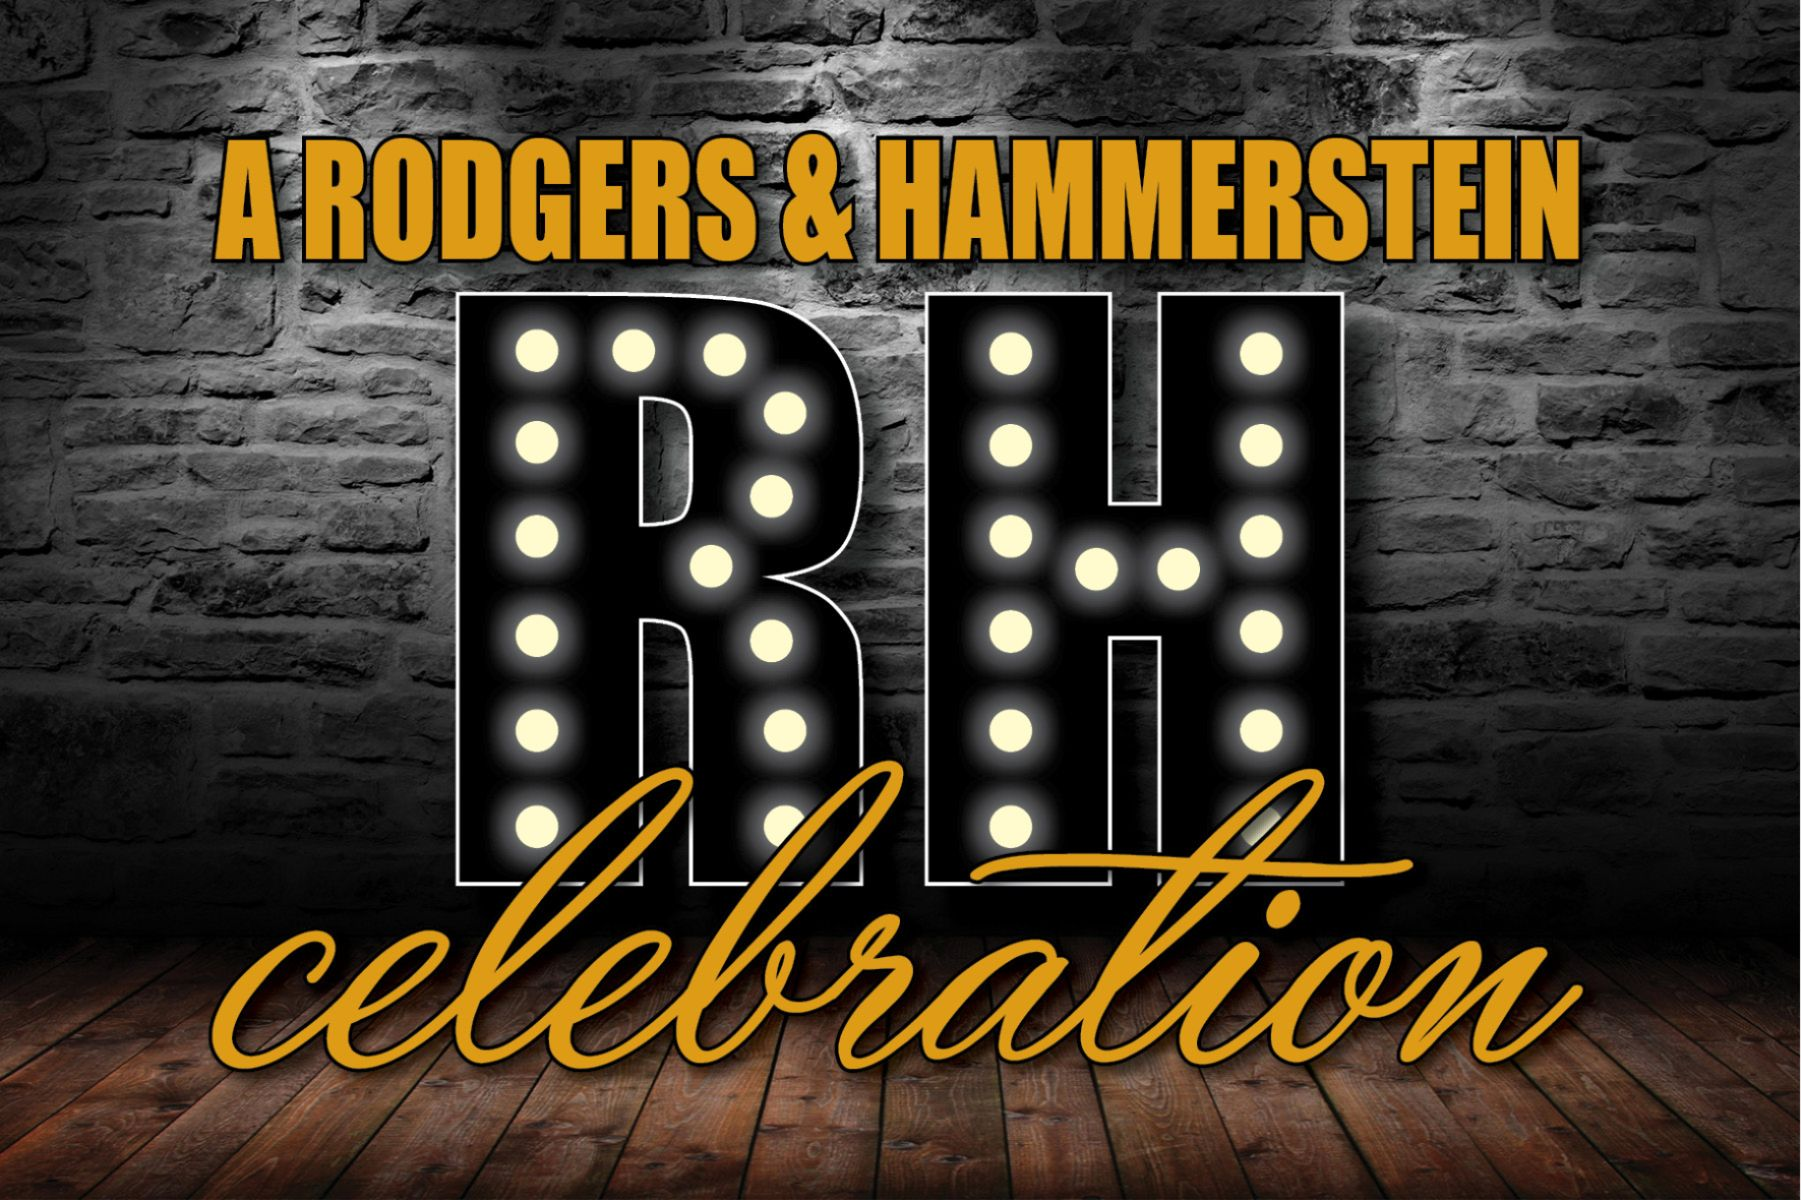 MOSC POPS - A Rodgers & Hammerstein Celebration